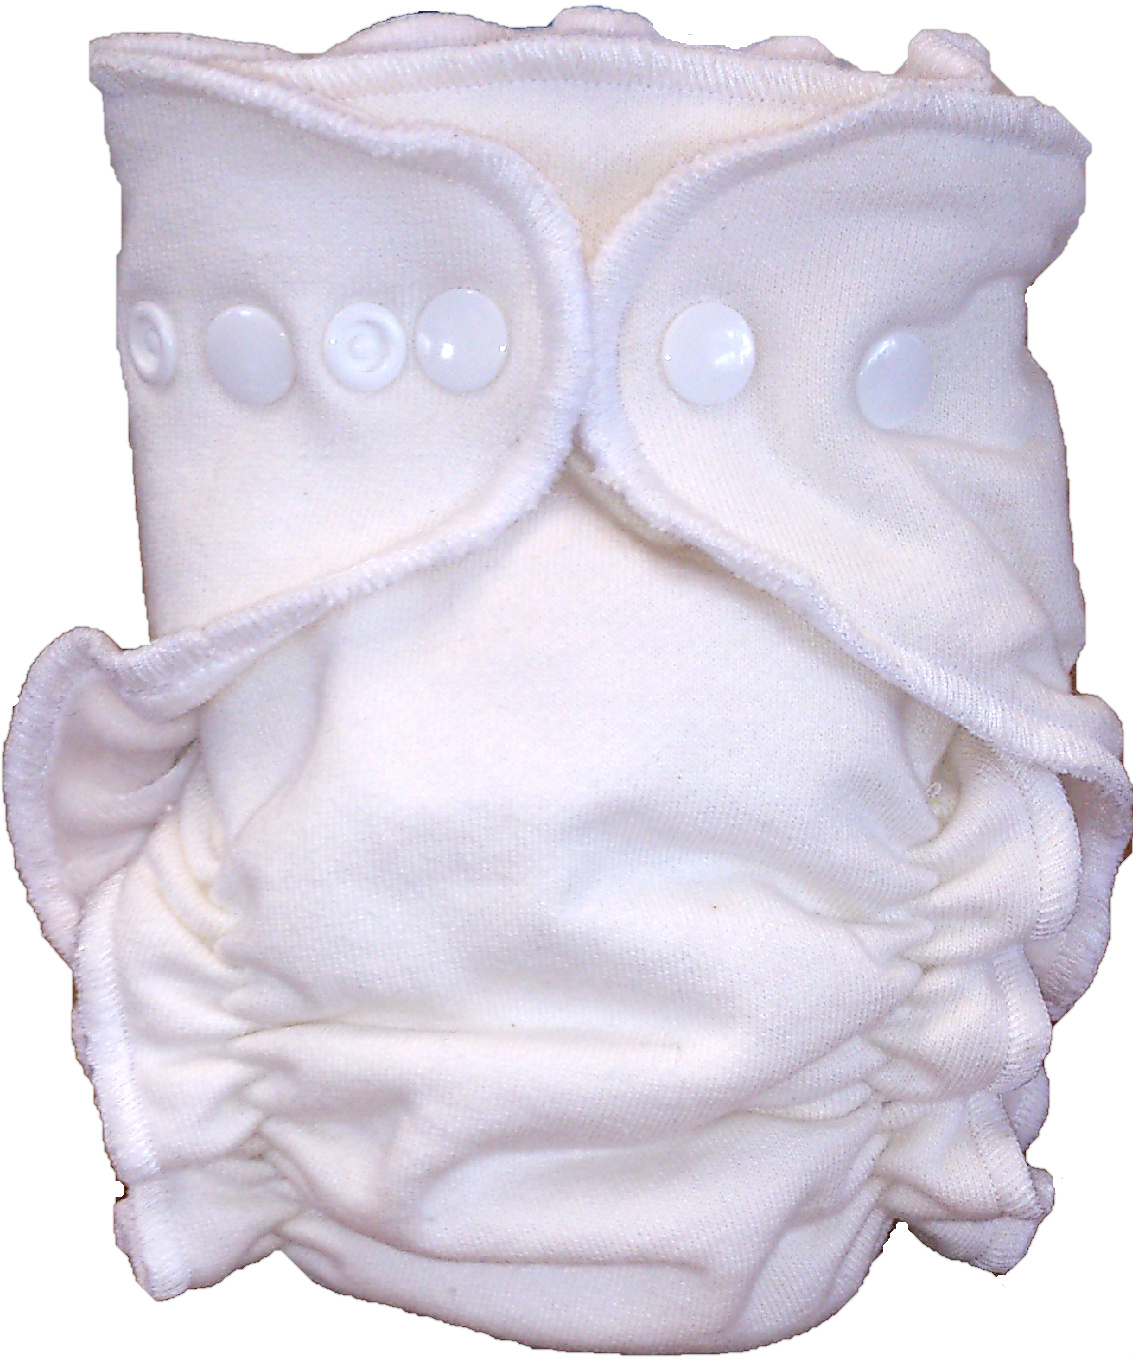 Itty Bitty Bums Natural Days Bamboo Fitted Nappy